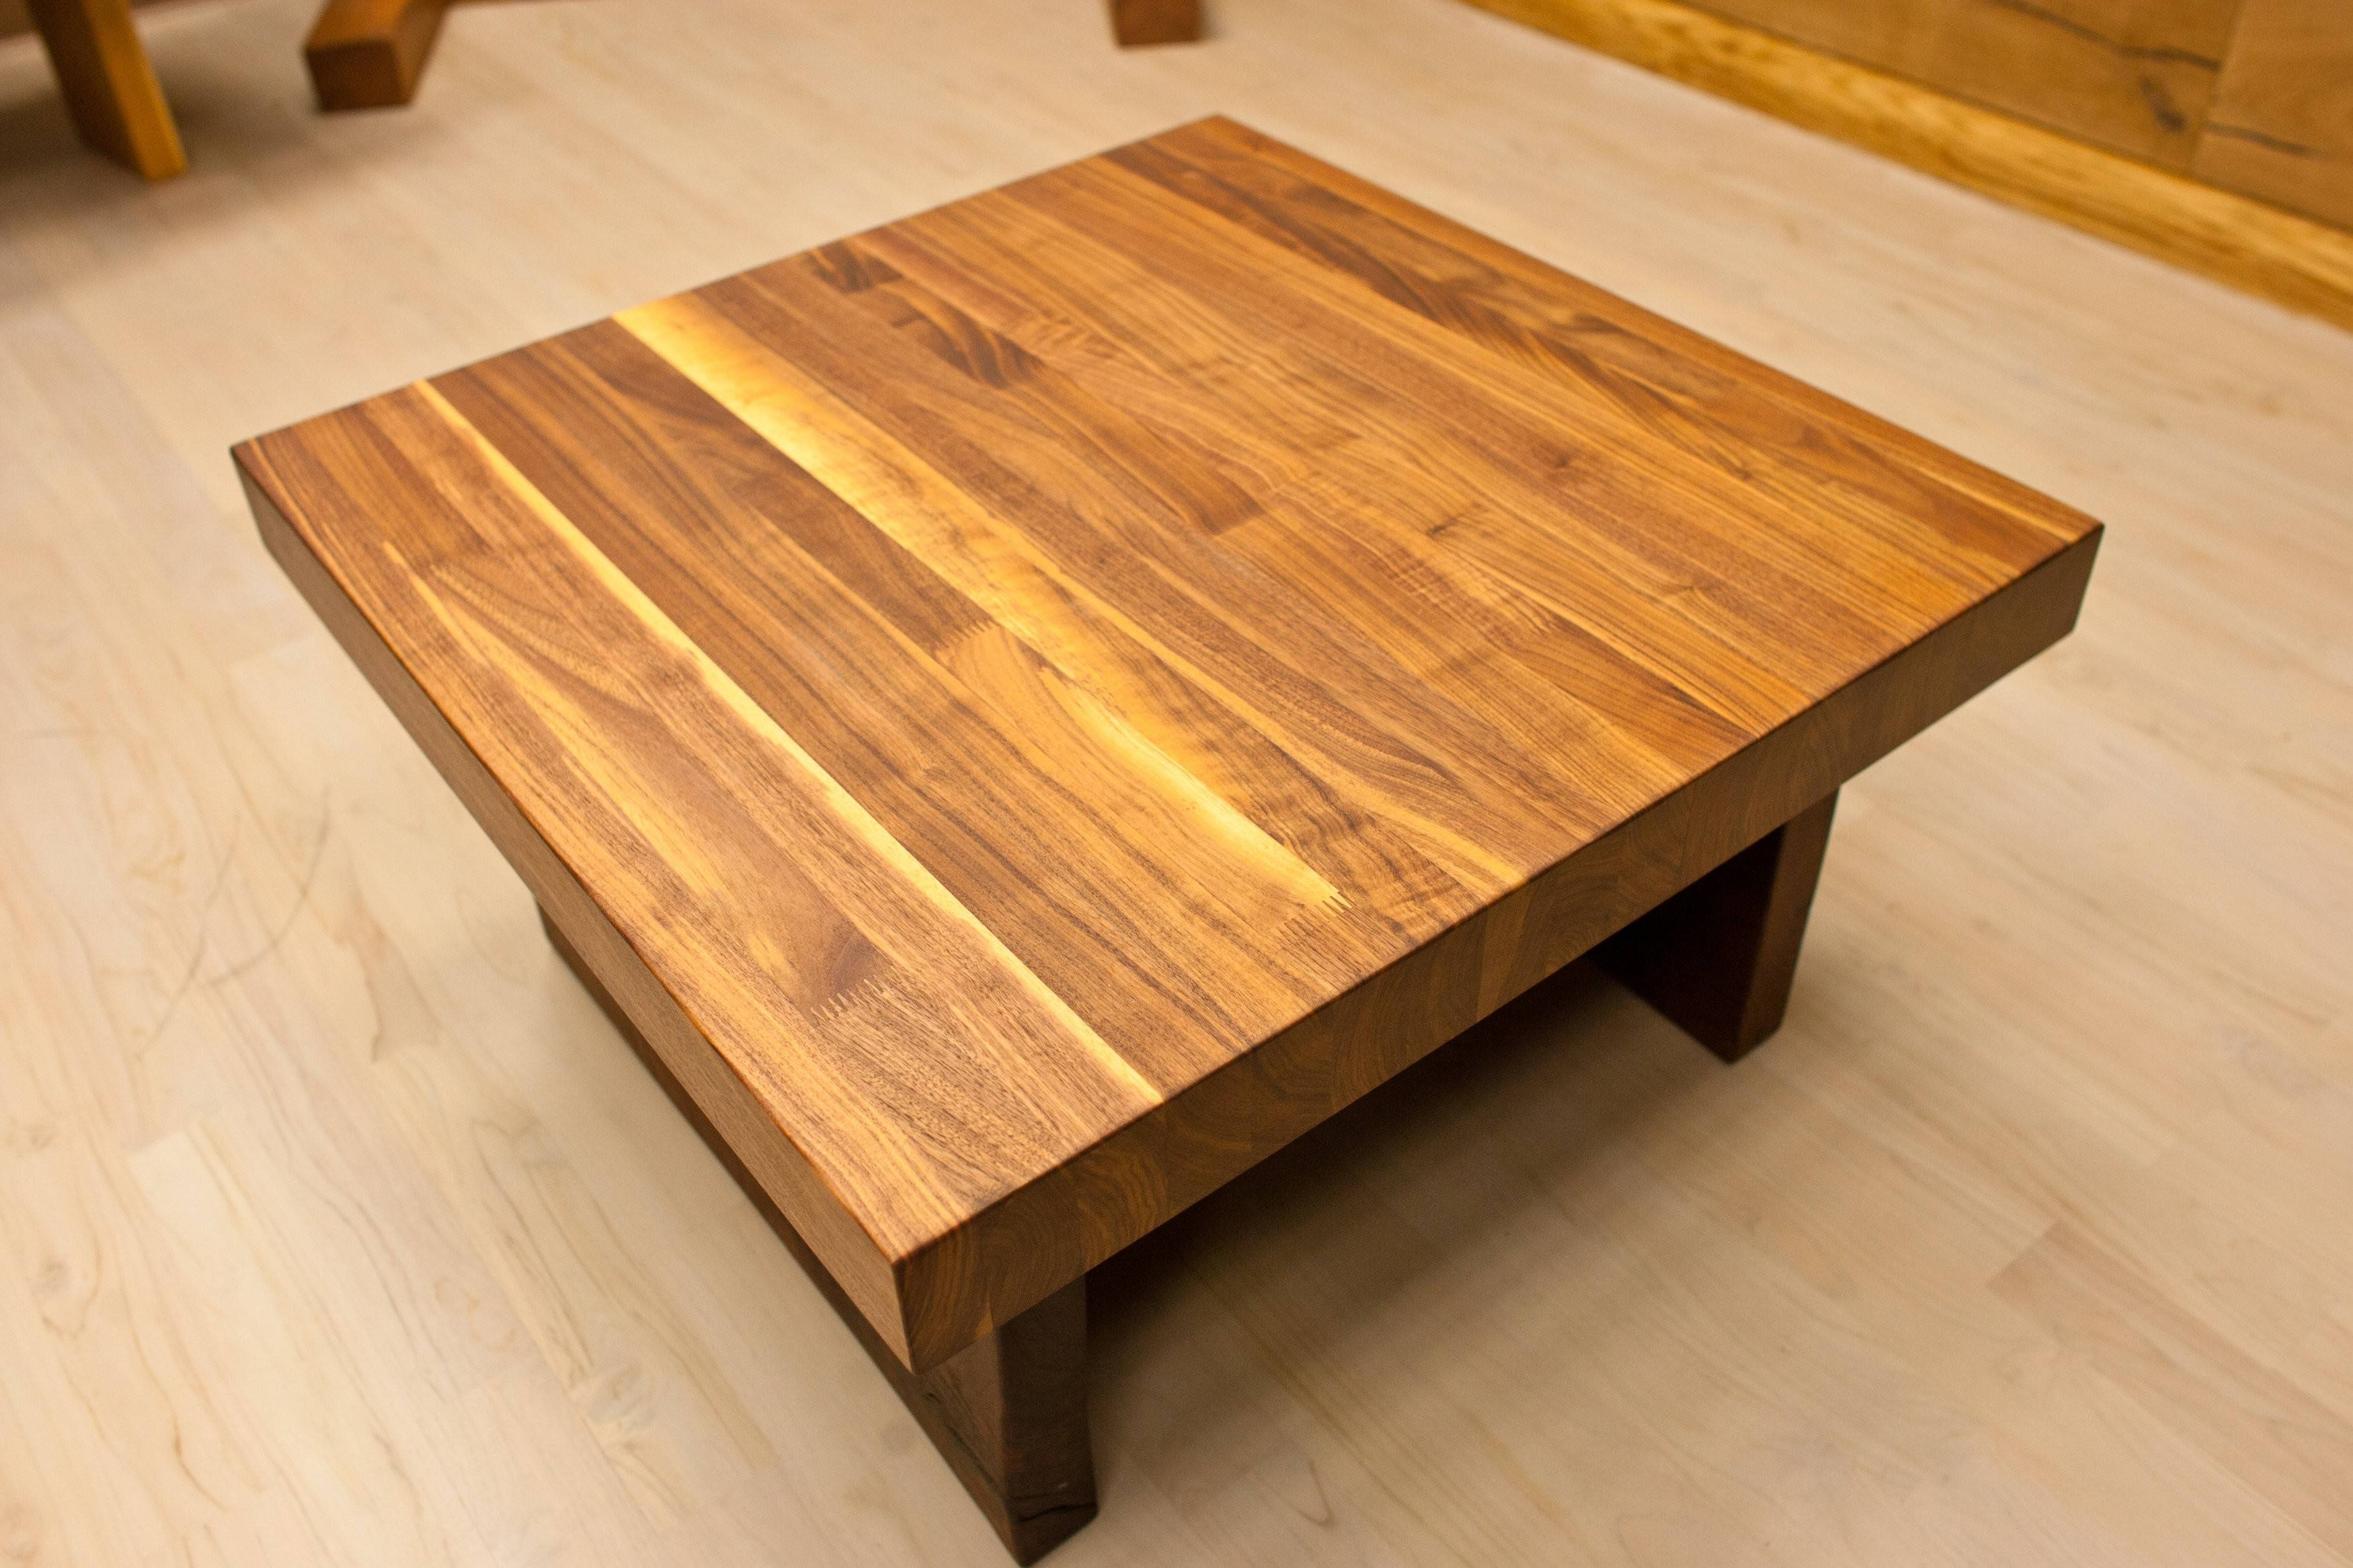 Coffee Table: Glamorous Real Wood Coffee Table Ideas Oak Coffee intended for Large Square Wood Coffee Tables (Image 6 of 30)